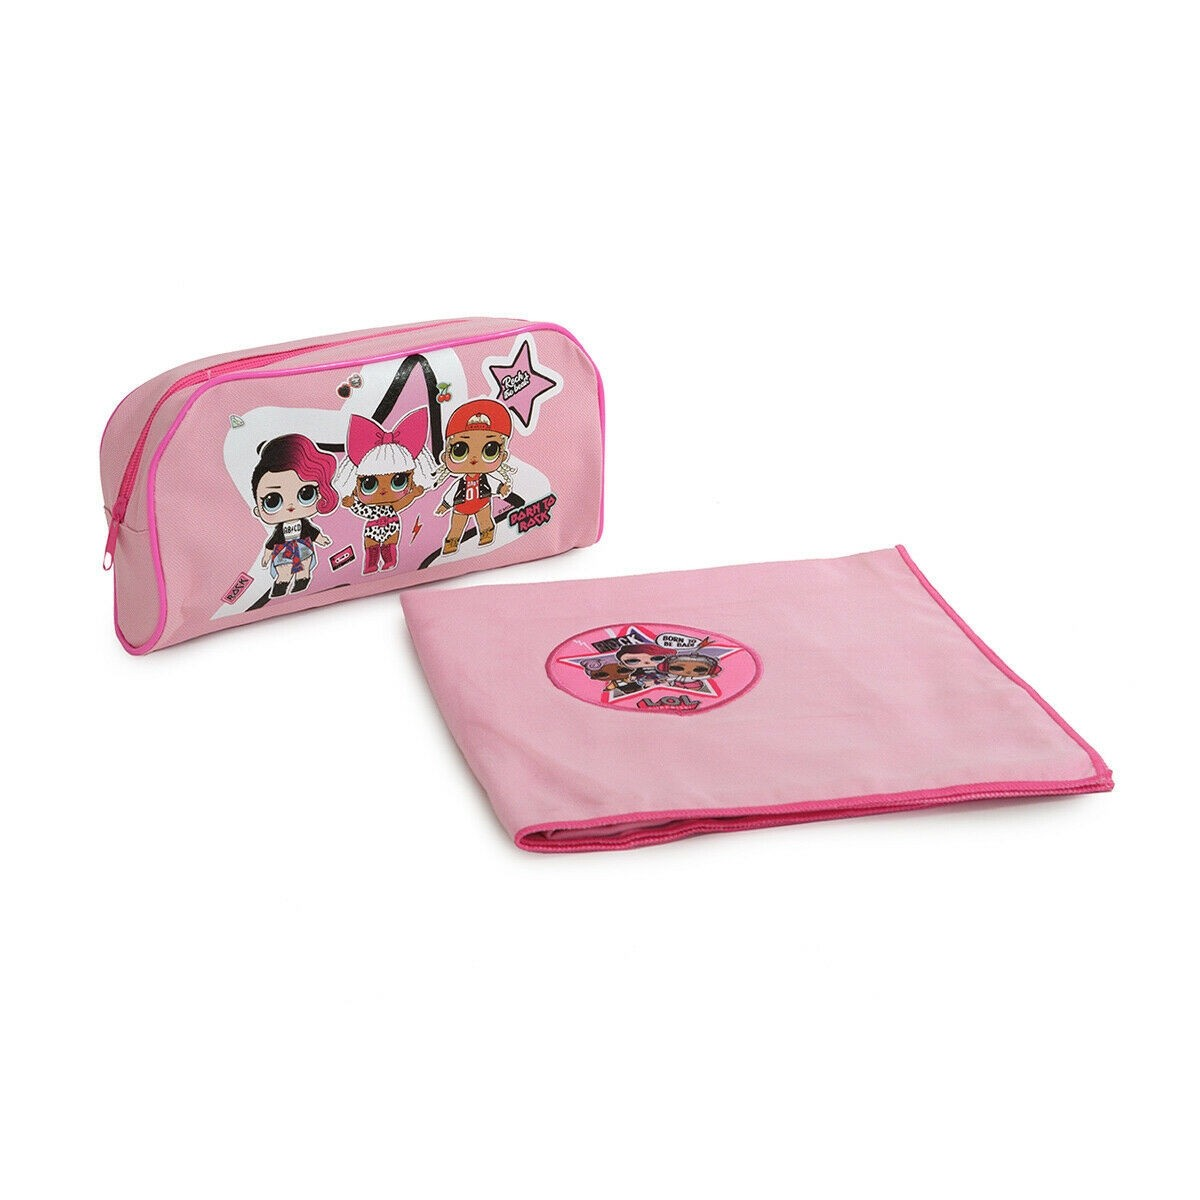 LOL Surprise Telo Bagno e Beauty Case in Set Regalo